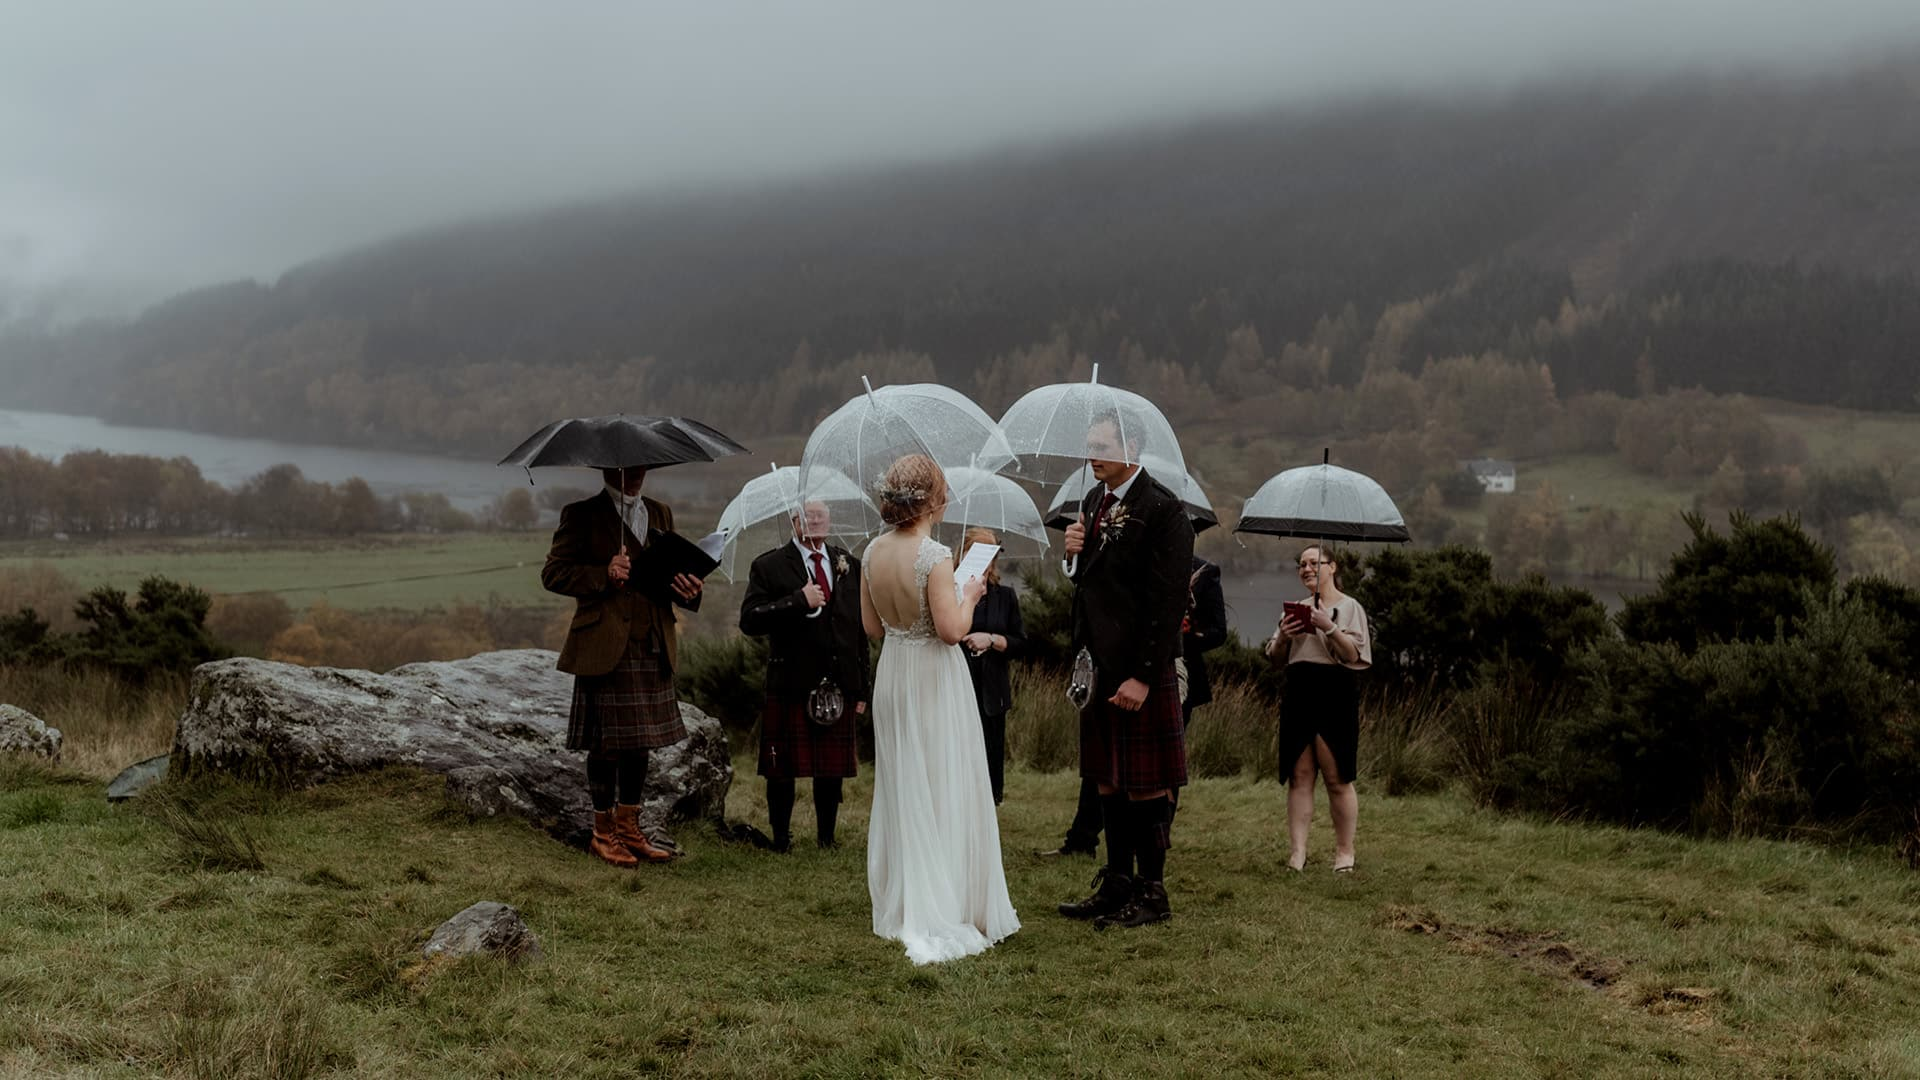 elopement ceremony taking place in scotland highlands in the rain